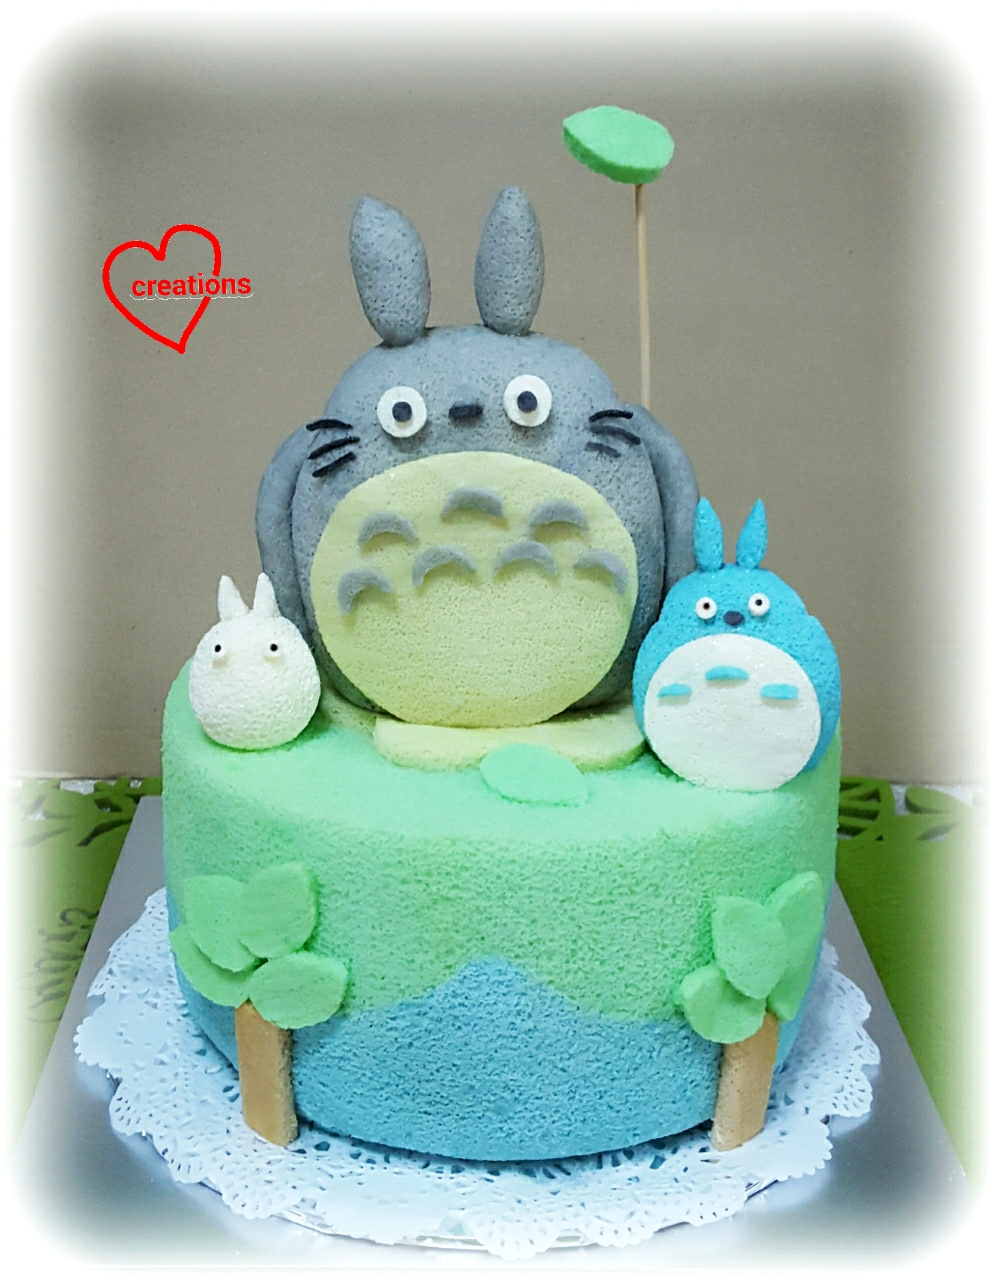 Loving Creations For You Totoro And Friends Chiffon Cake